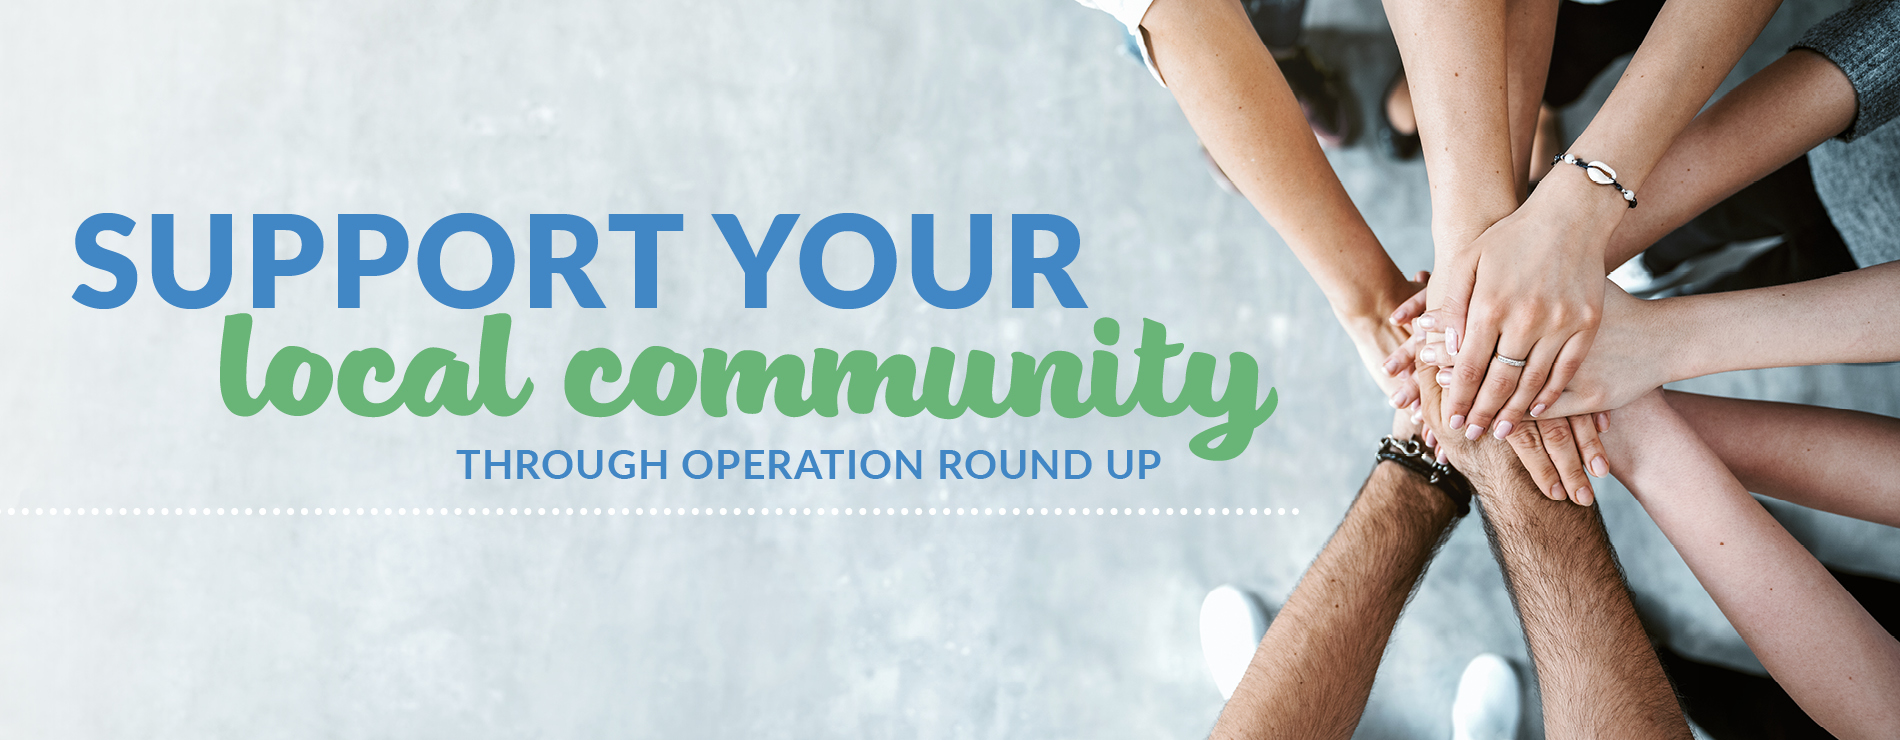 Support your local community through Operation Round Up